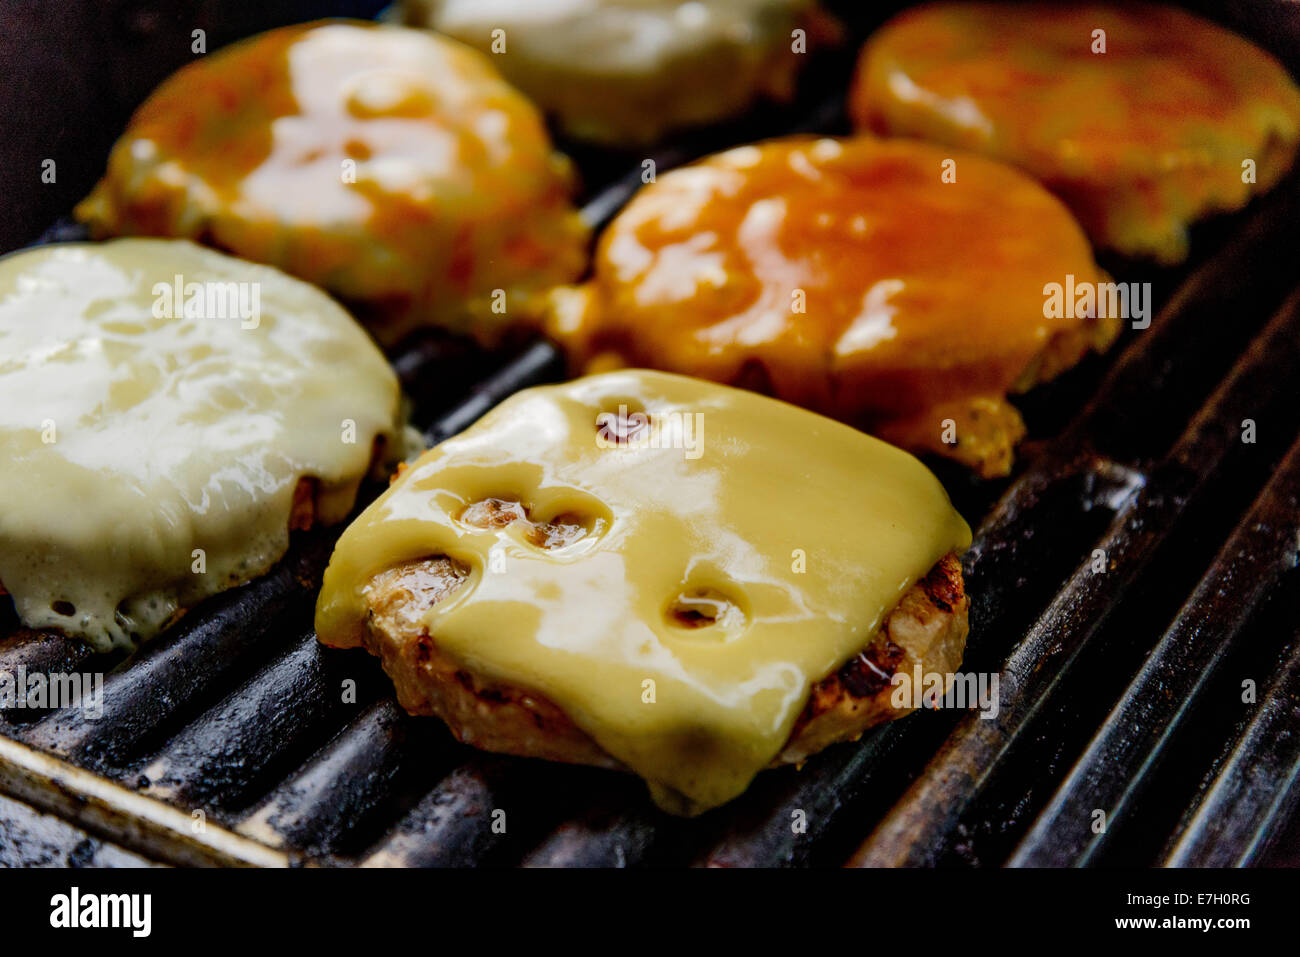 cheeseburgers cooking on the grill - Stock Image